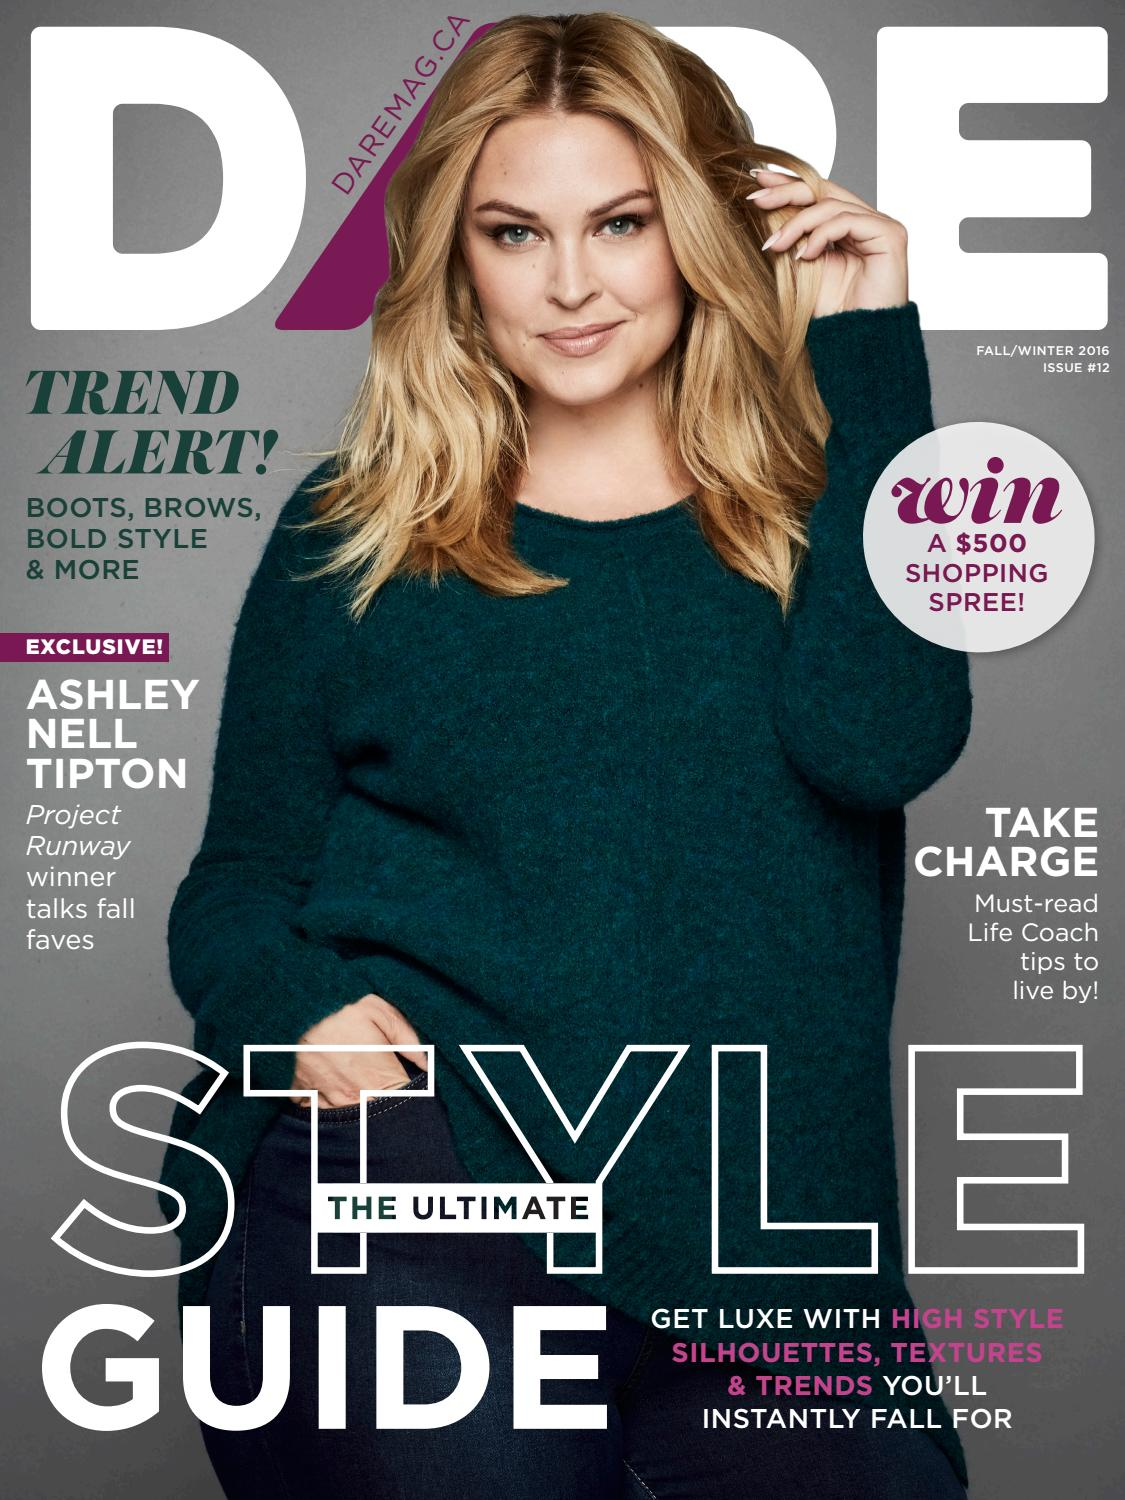 Plus-Size Magazines - Dare Magazine